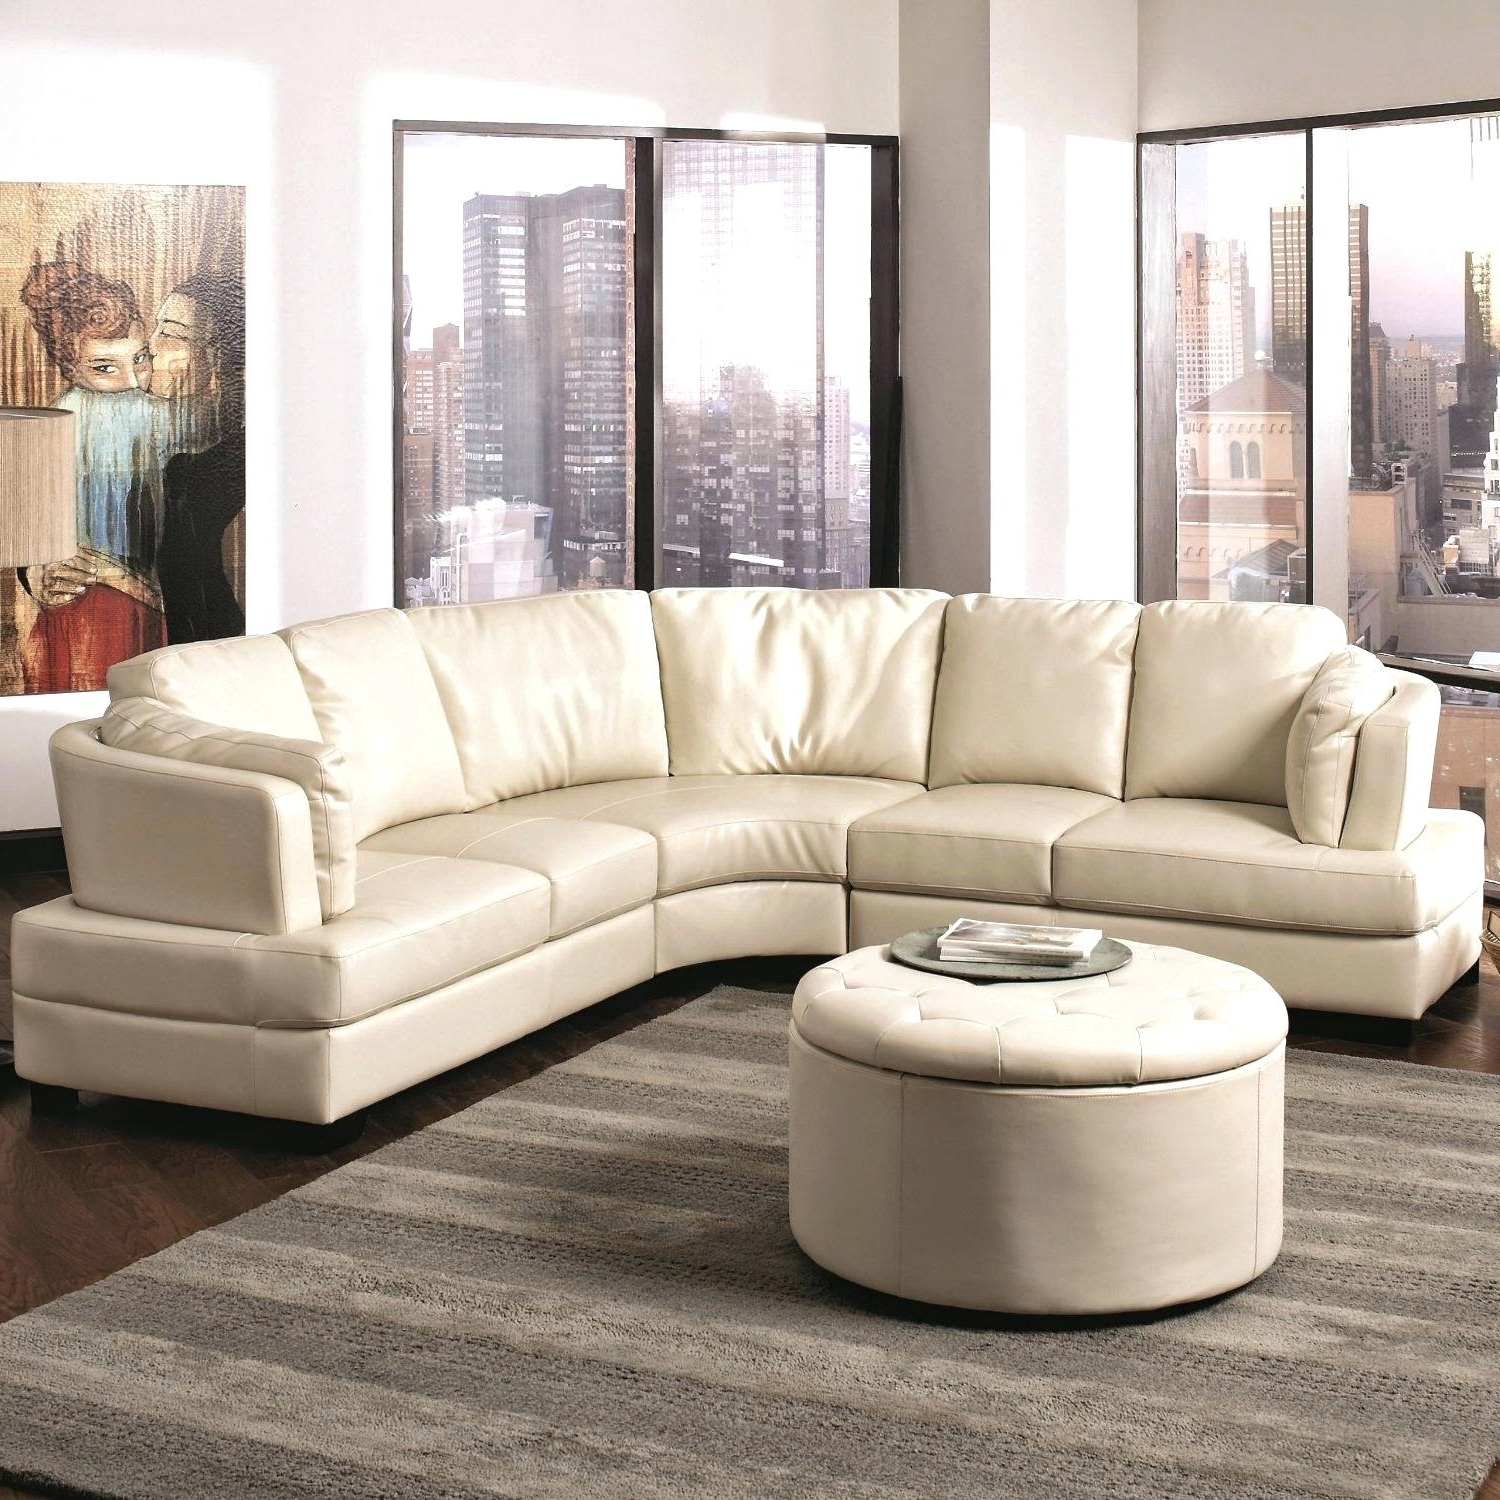 Ontario Sectional Sofas In Best And Newest Sectional Sofa Sale Sa Couches For Near Me Liquidation Toronto (View 2 of 20)